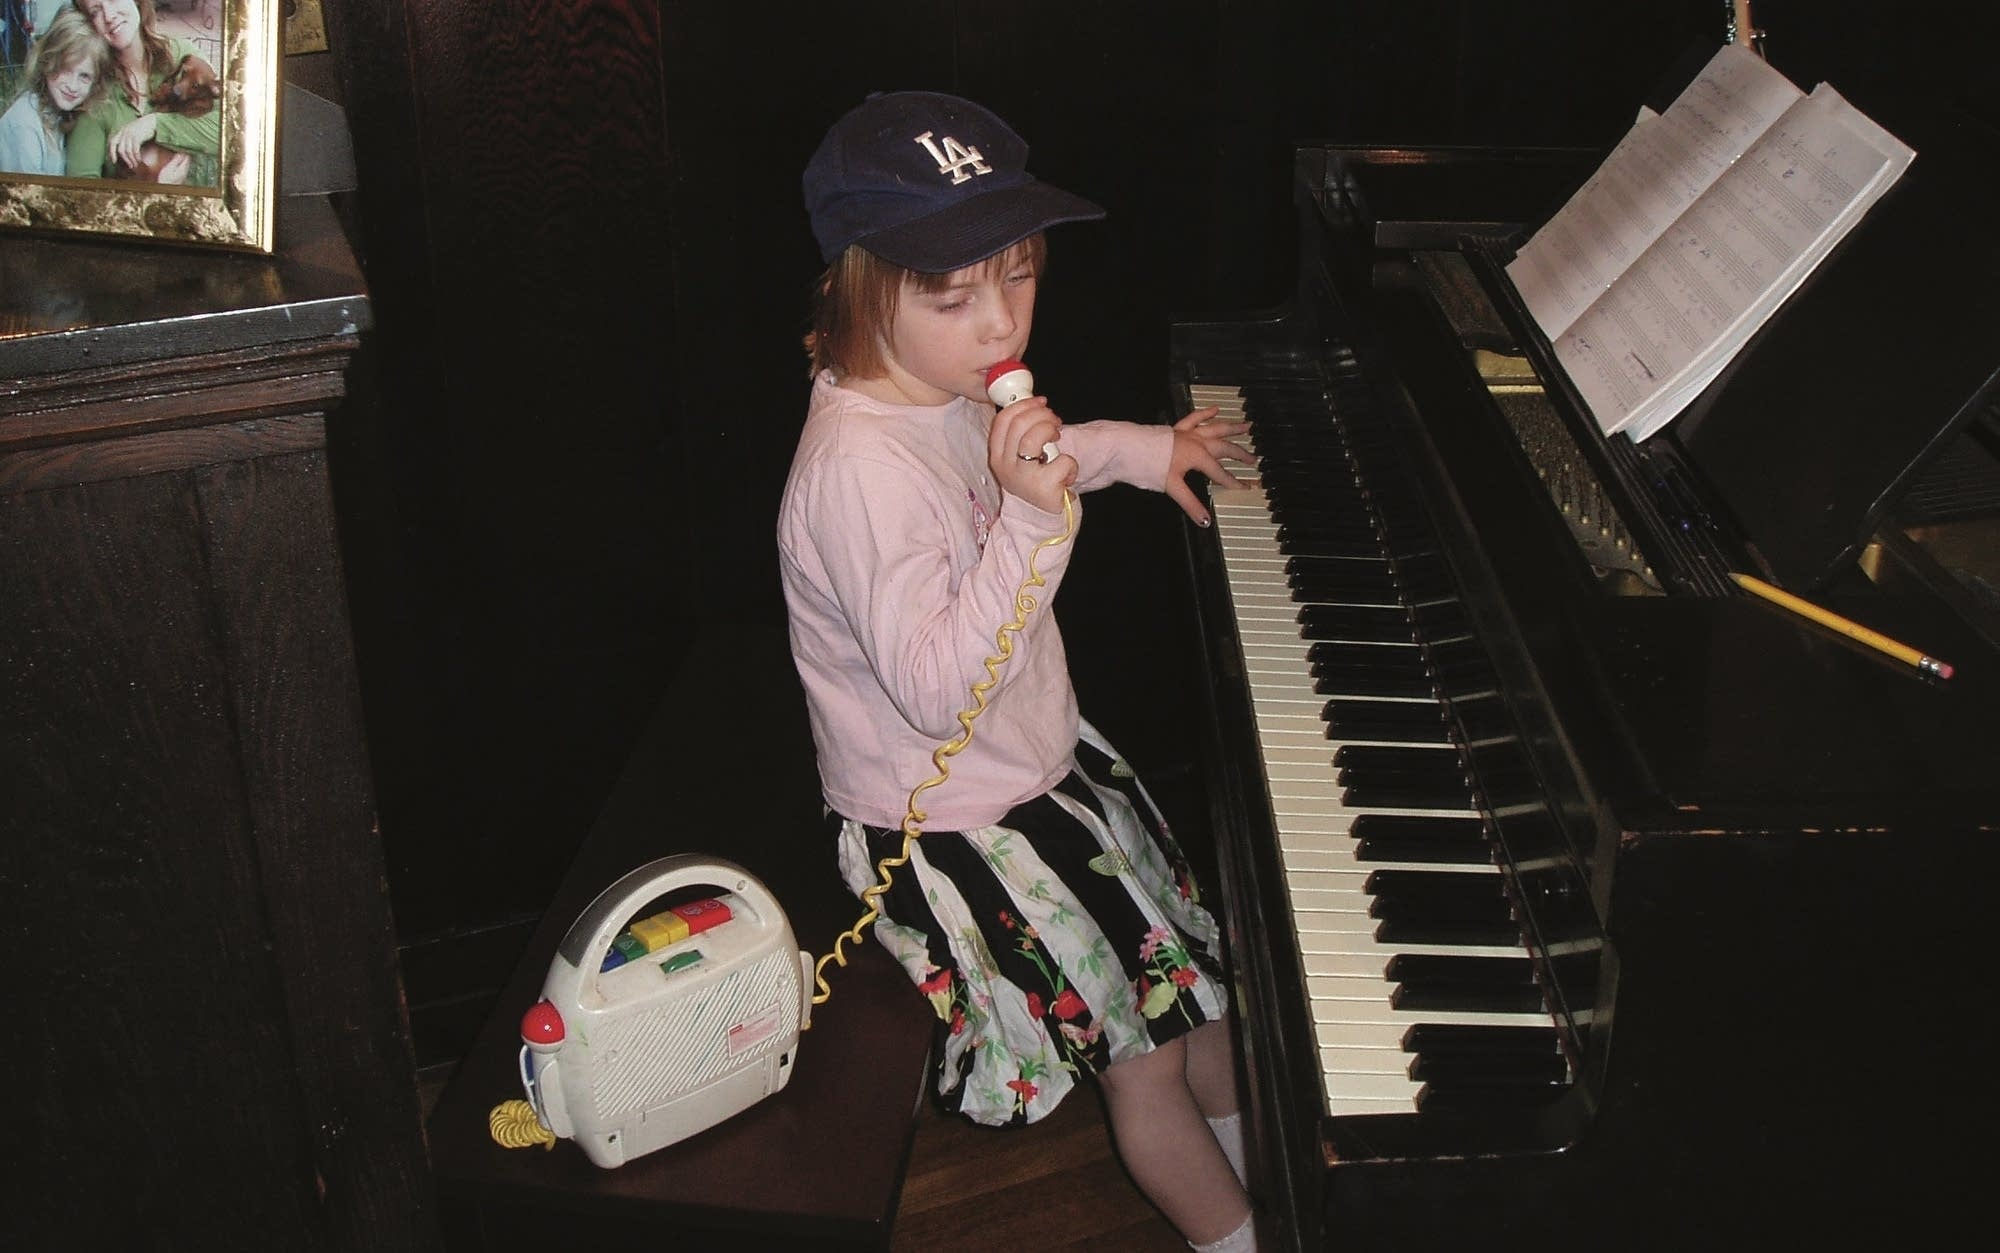 Young child sings into microphone.